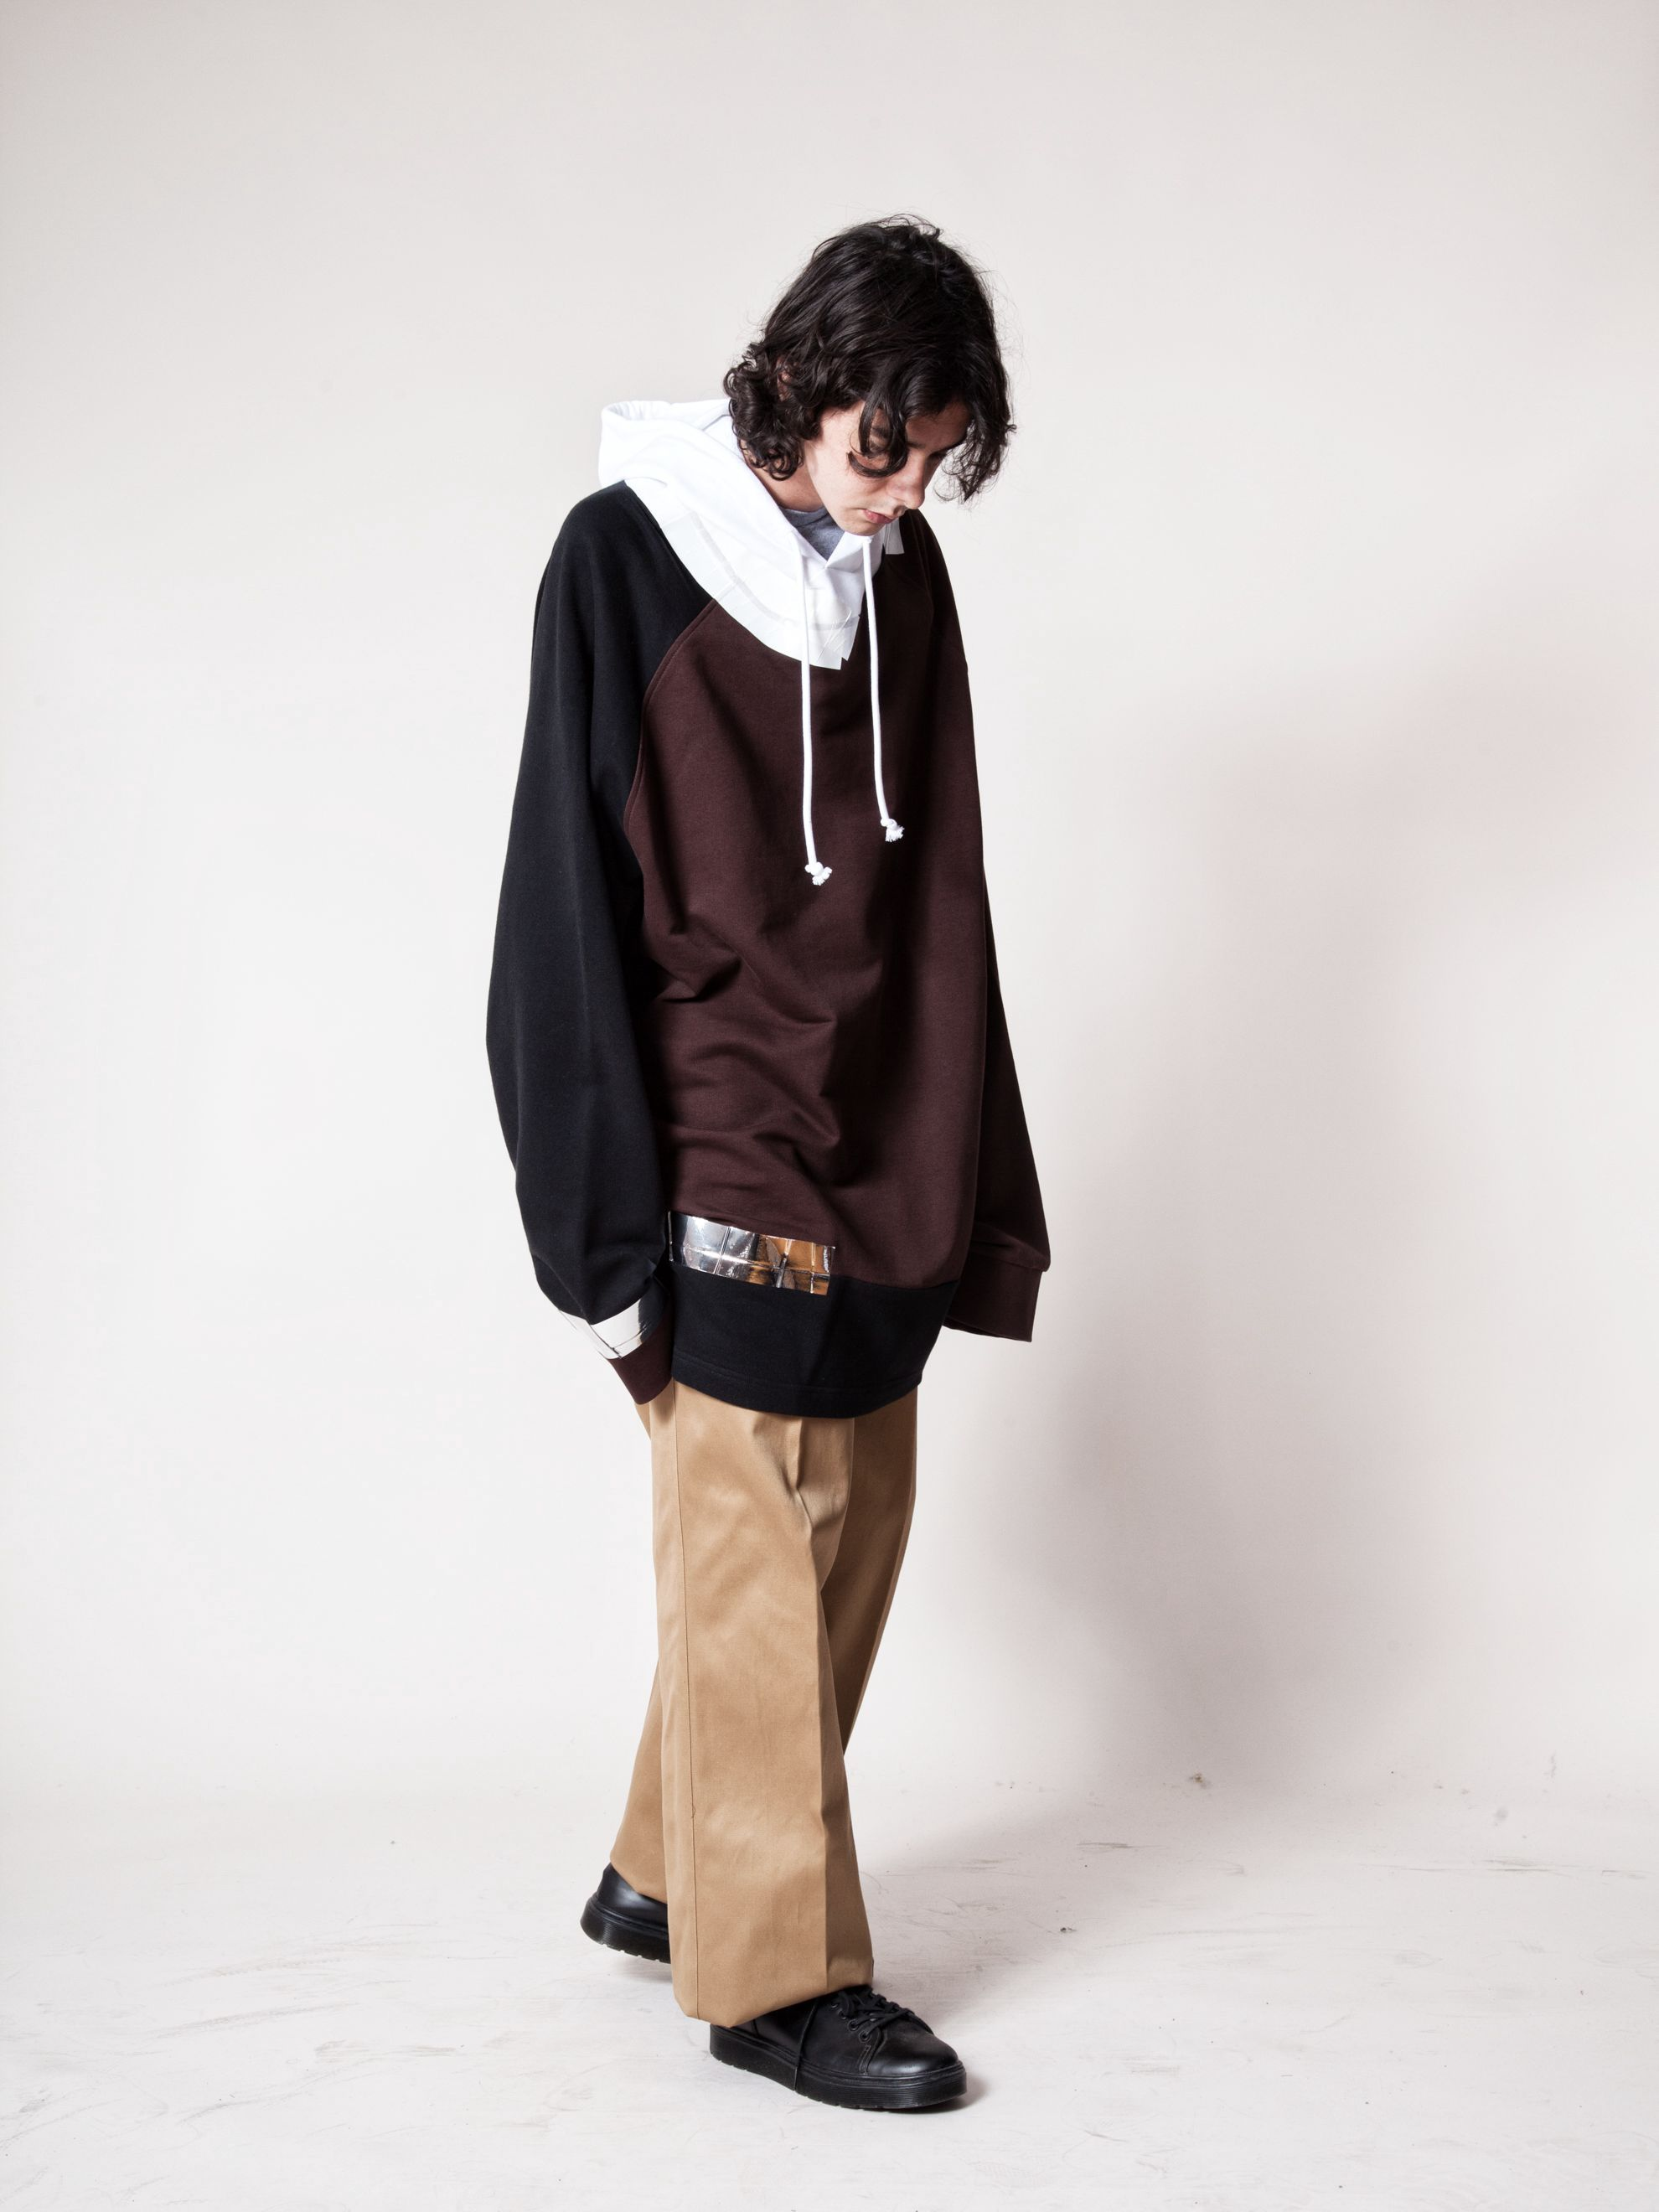 Black/Brown Oversized Hooded Sweatshirt (Tape) 6